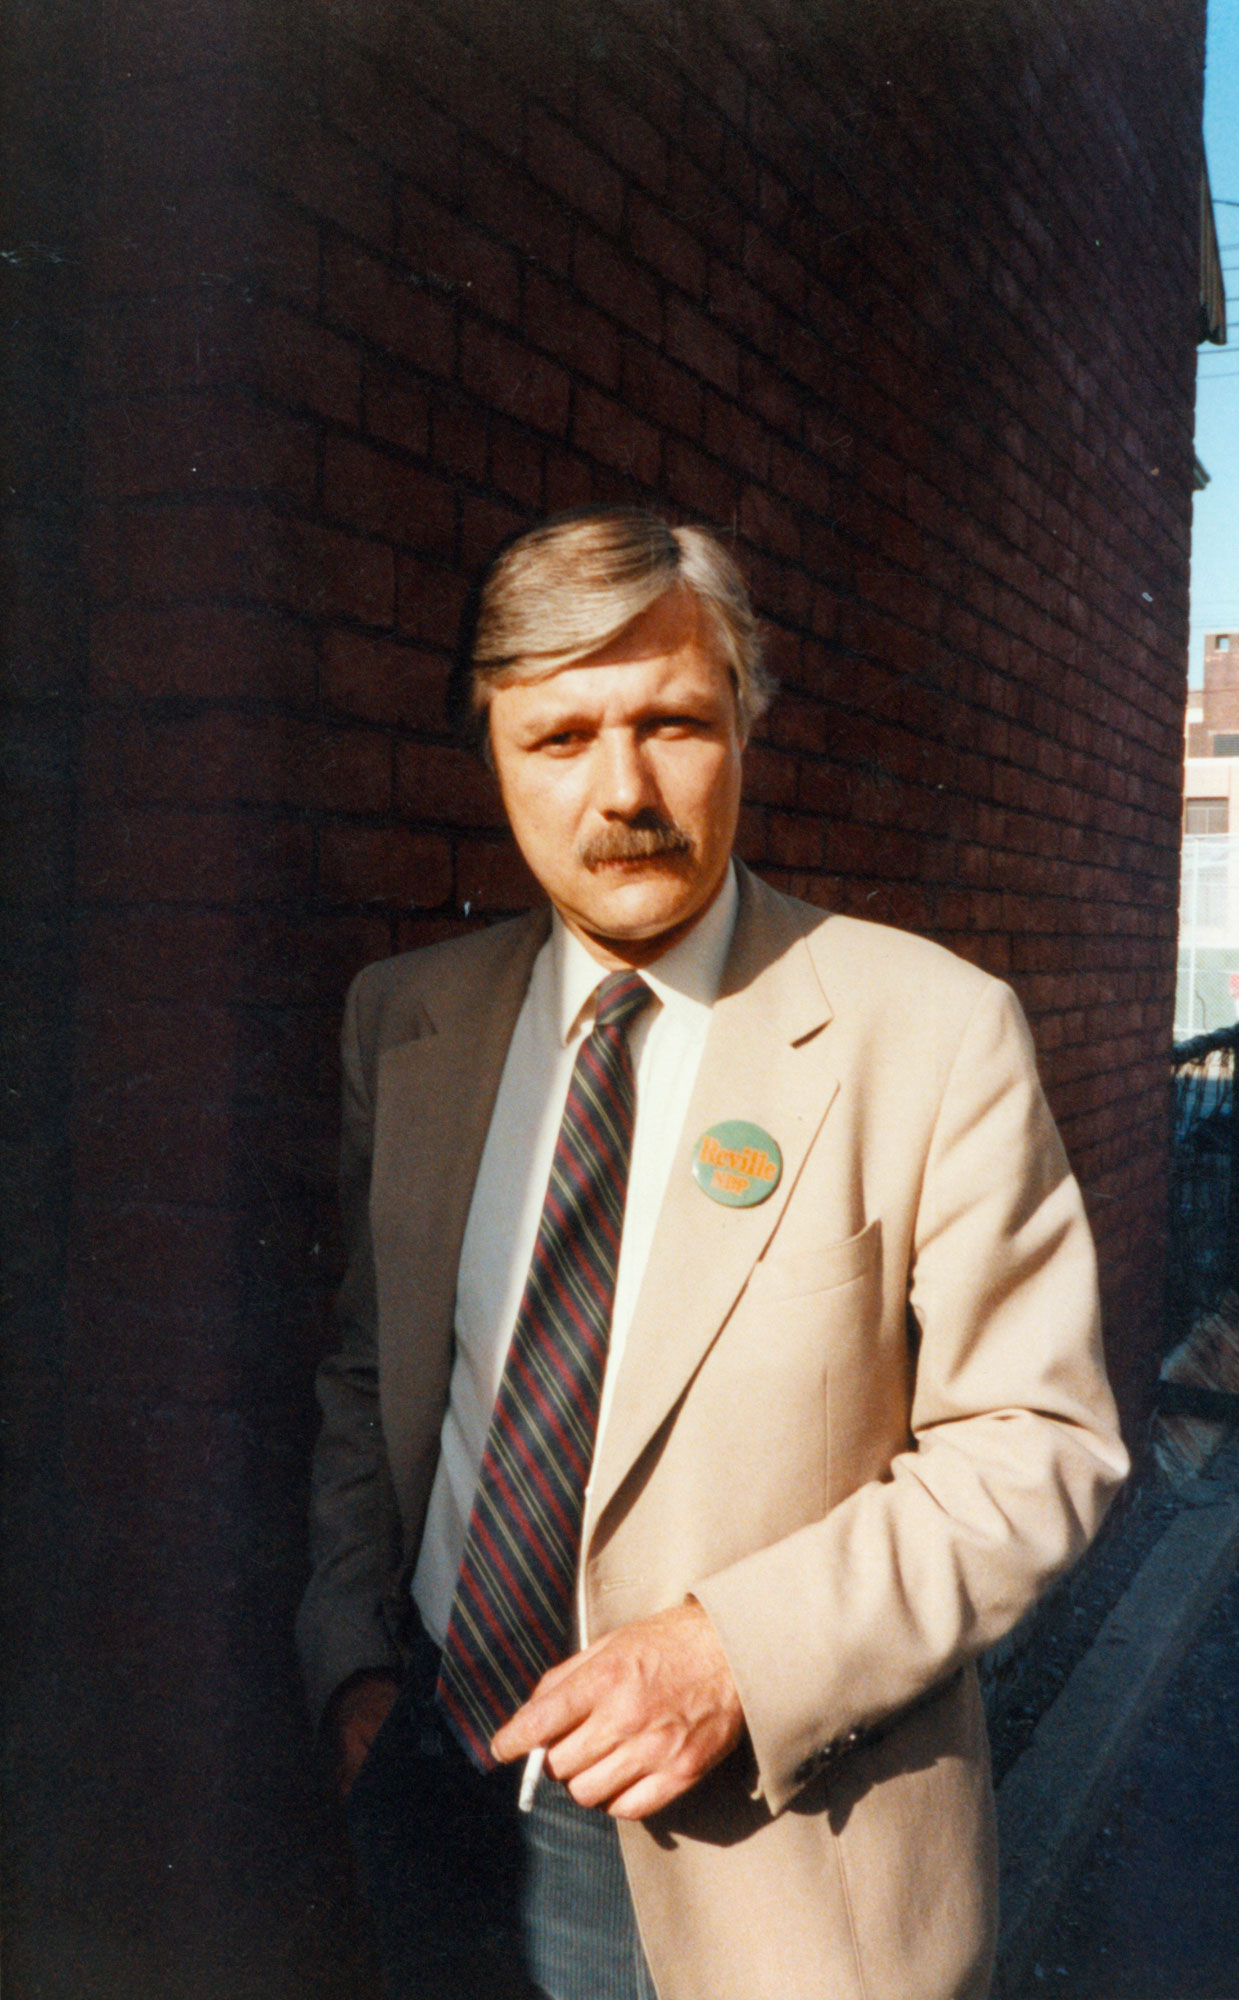 Reville wearing tie and sports jacket with button that reads: Reville NDP